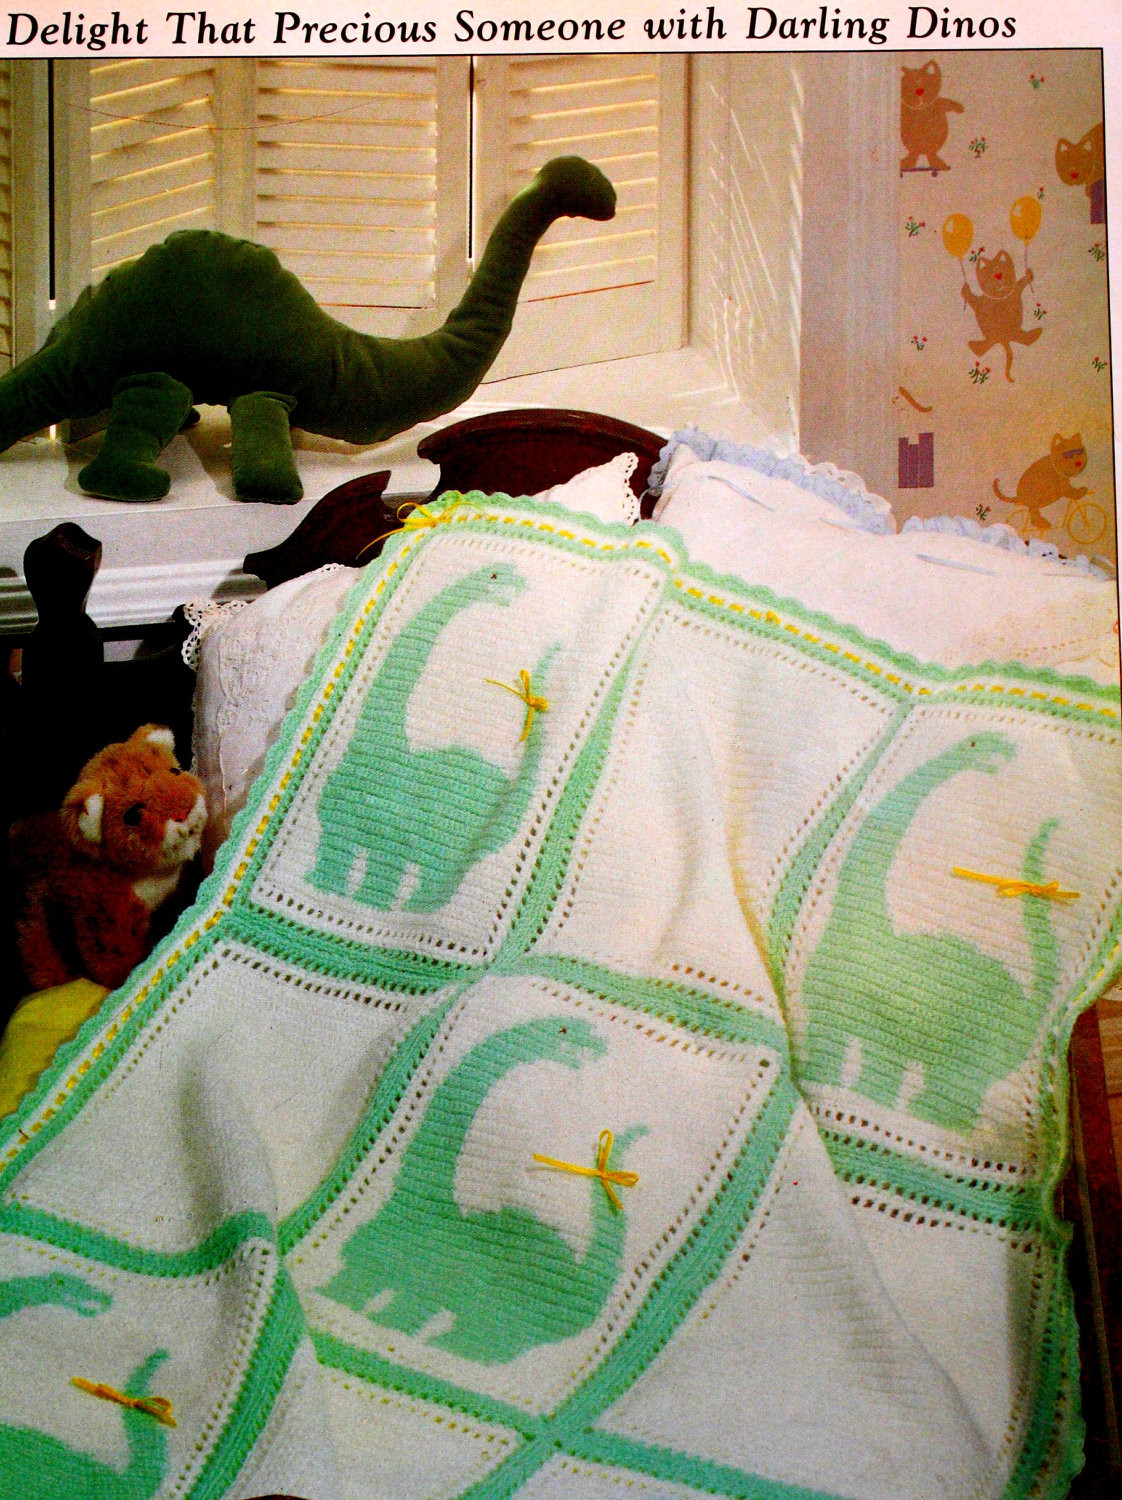 Crochet Dinosaur Blanket Pattern Plus added bonus patterns